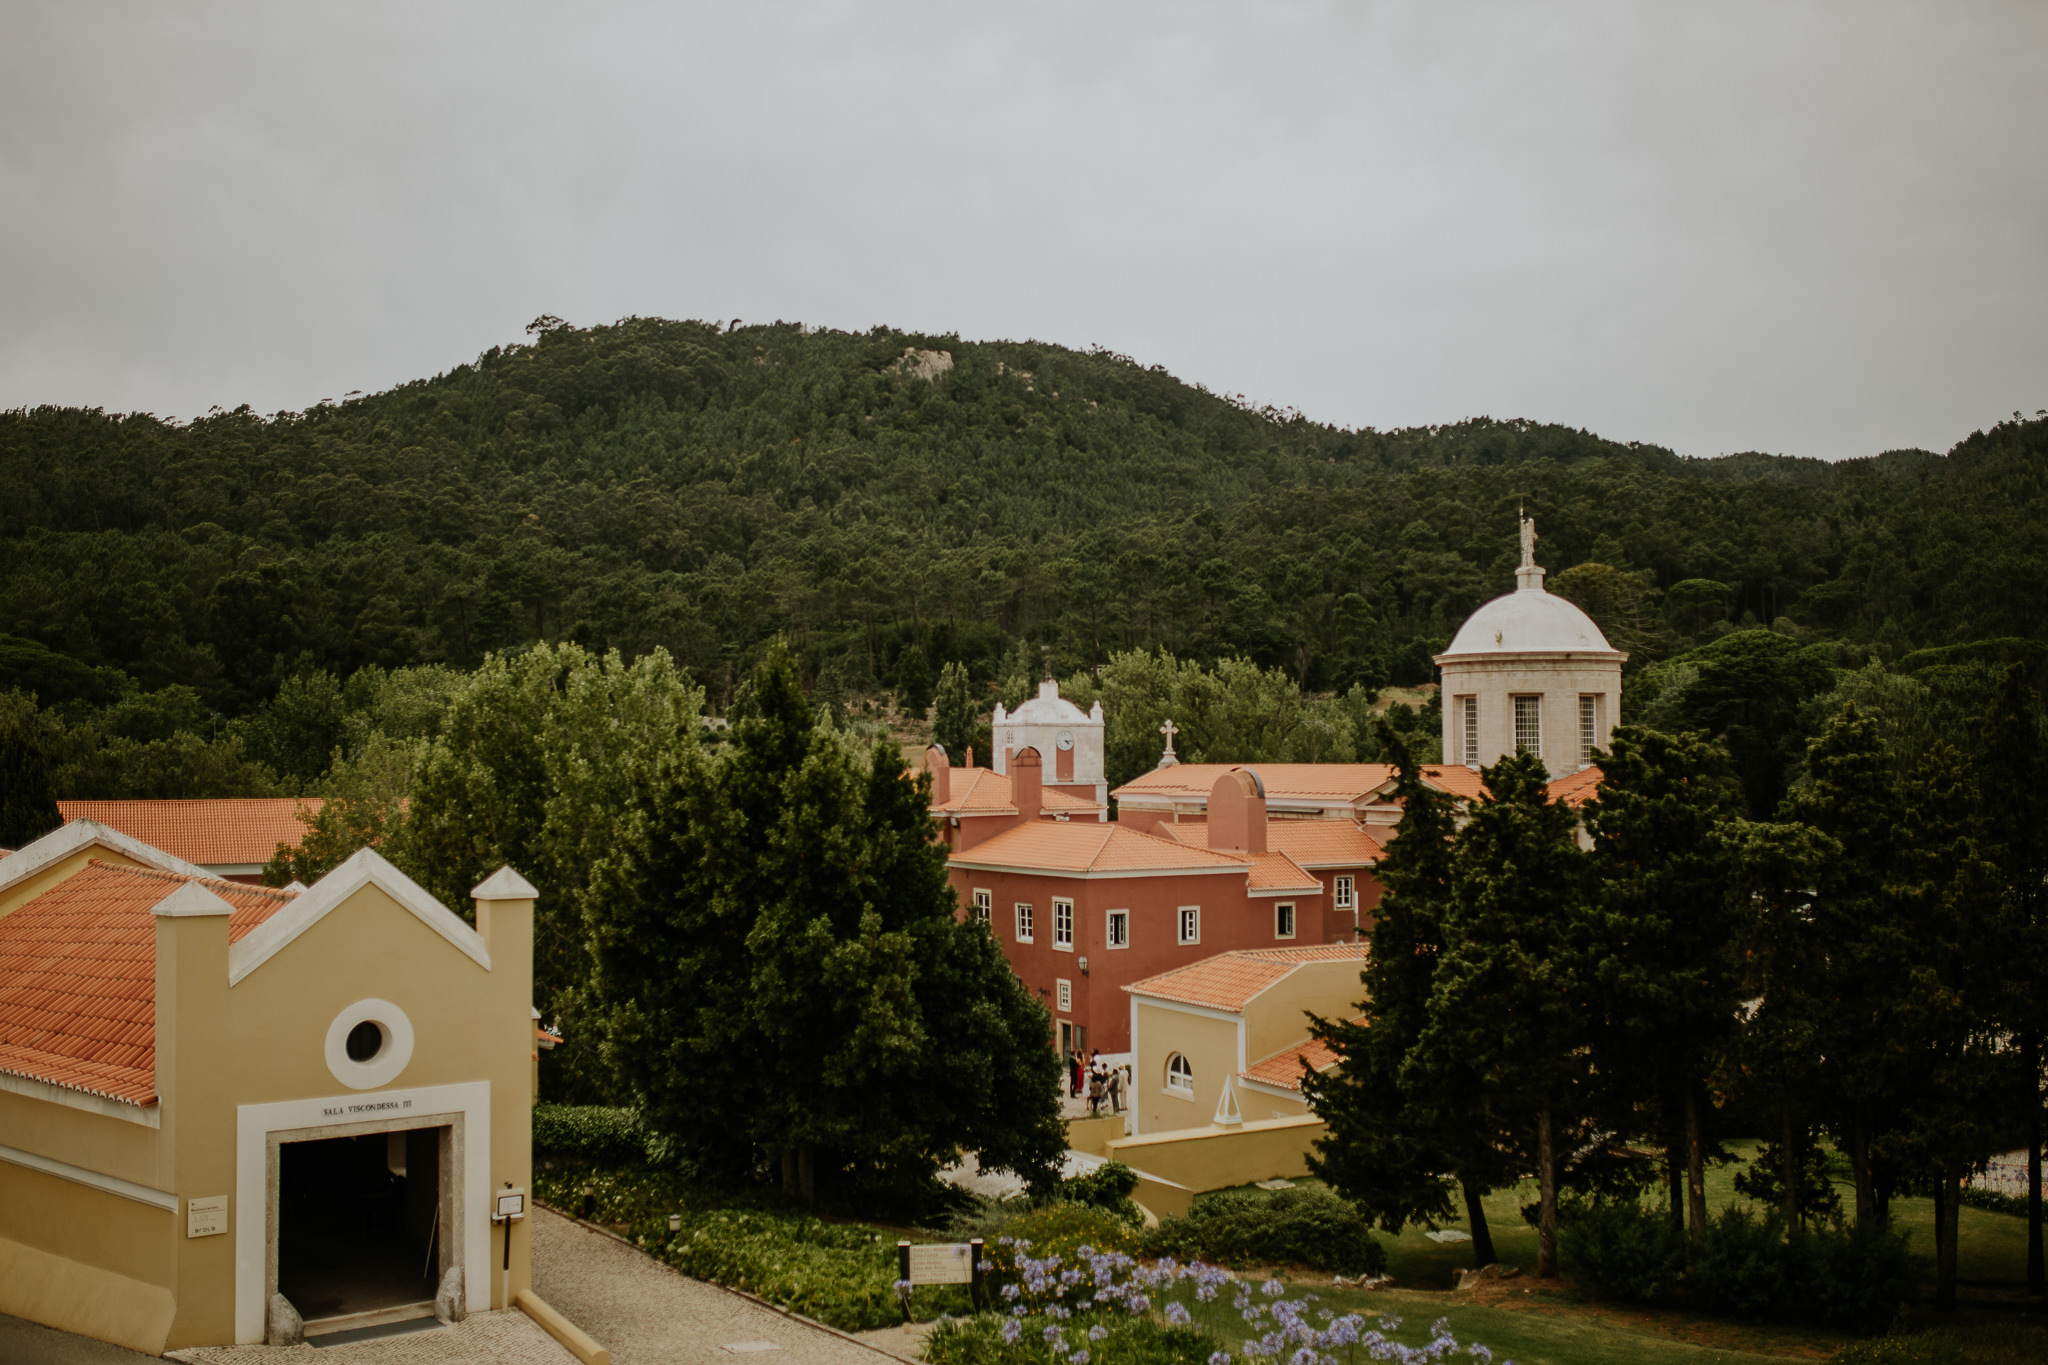 romina_thomas_destination_wedding_photography_fotografia_de_casamento_lisbon_sintra_penha_longa_resort-58